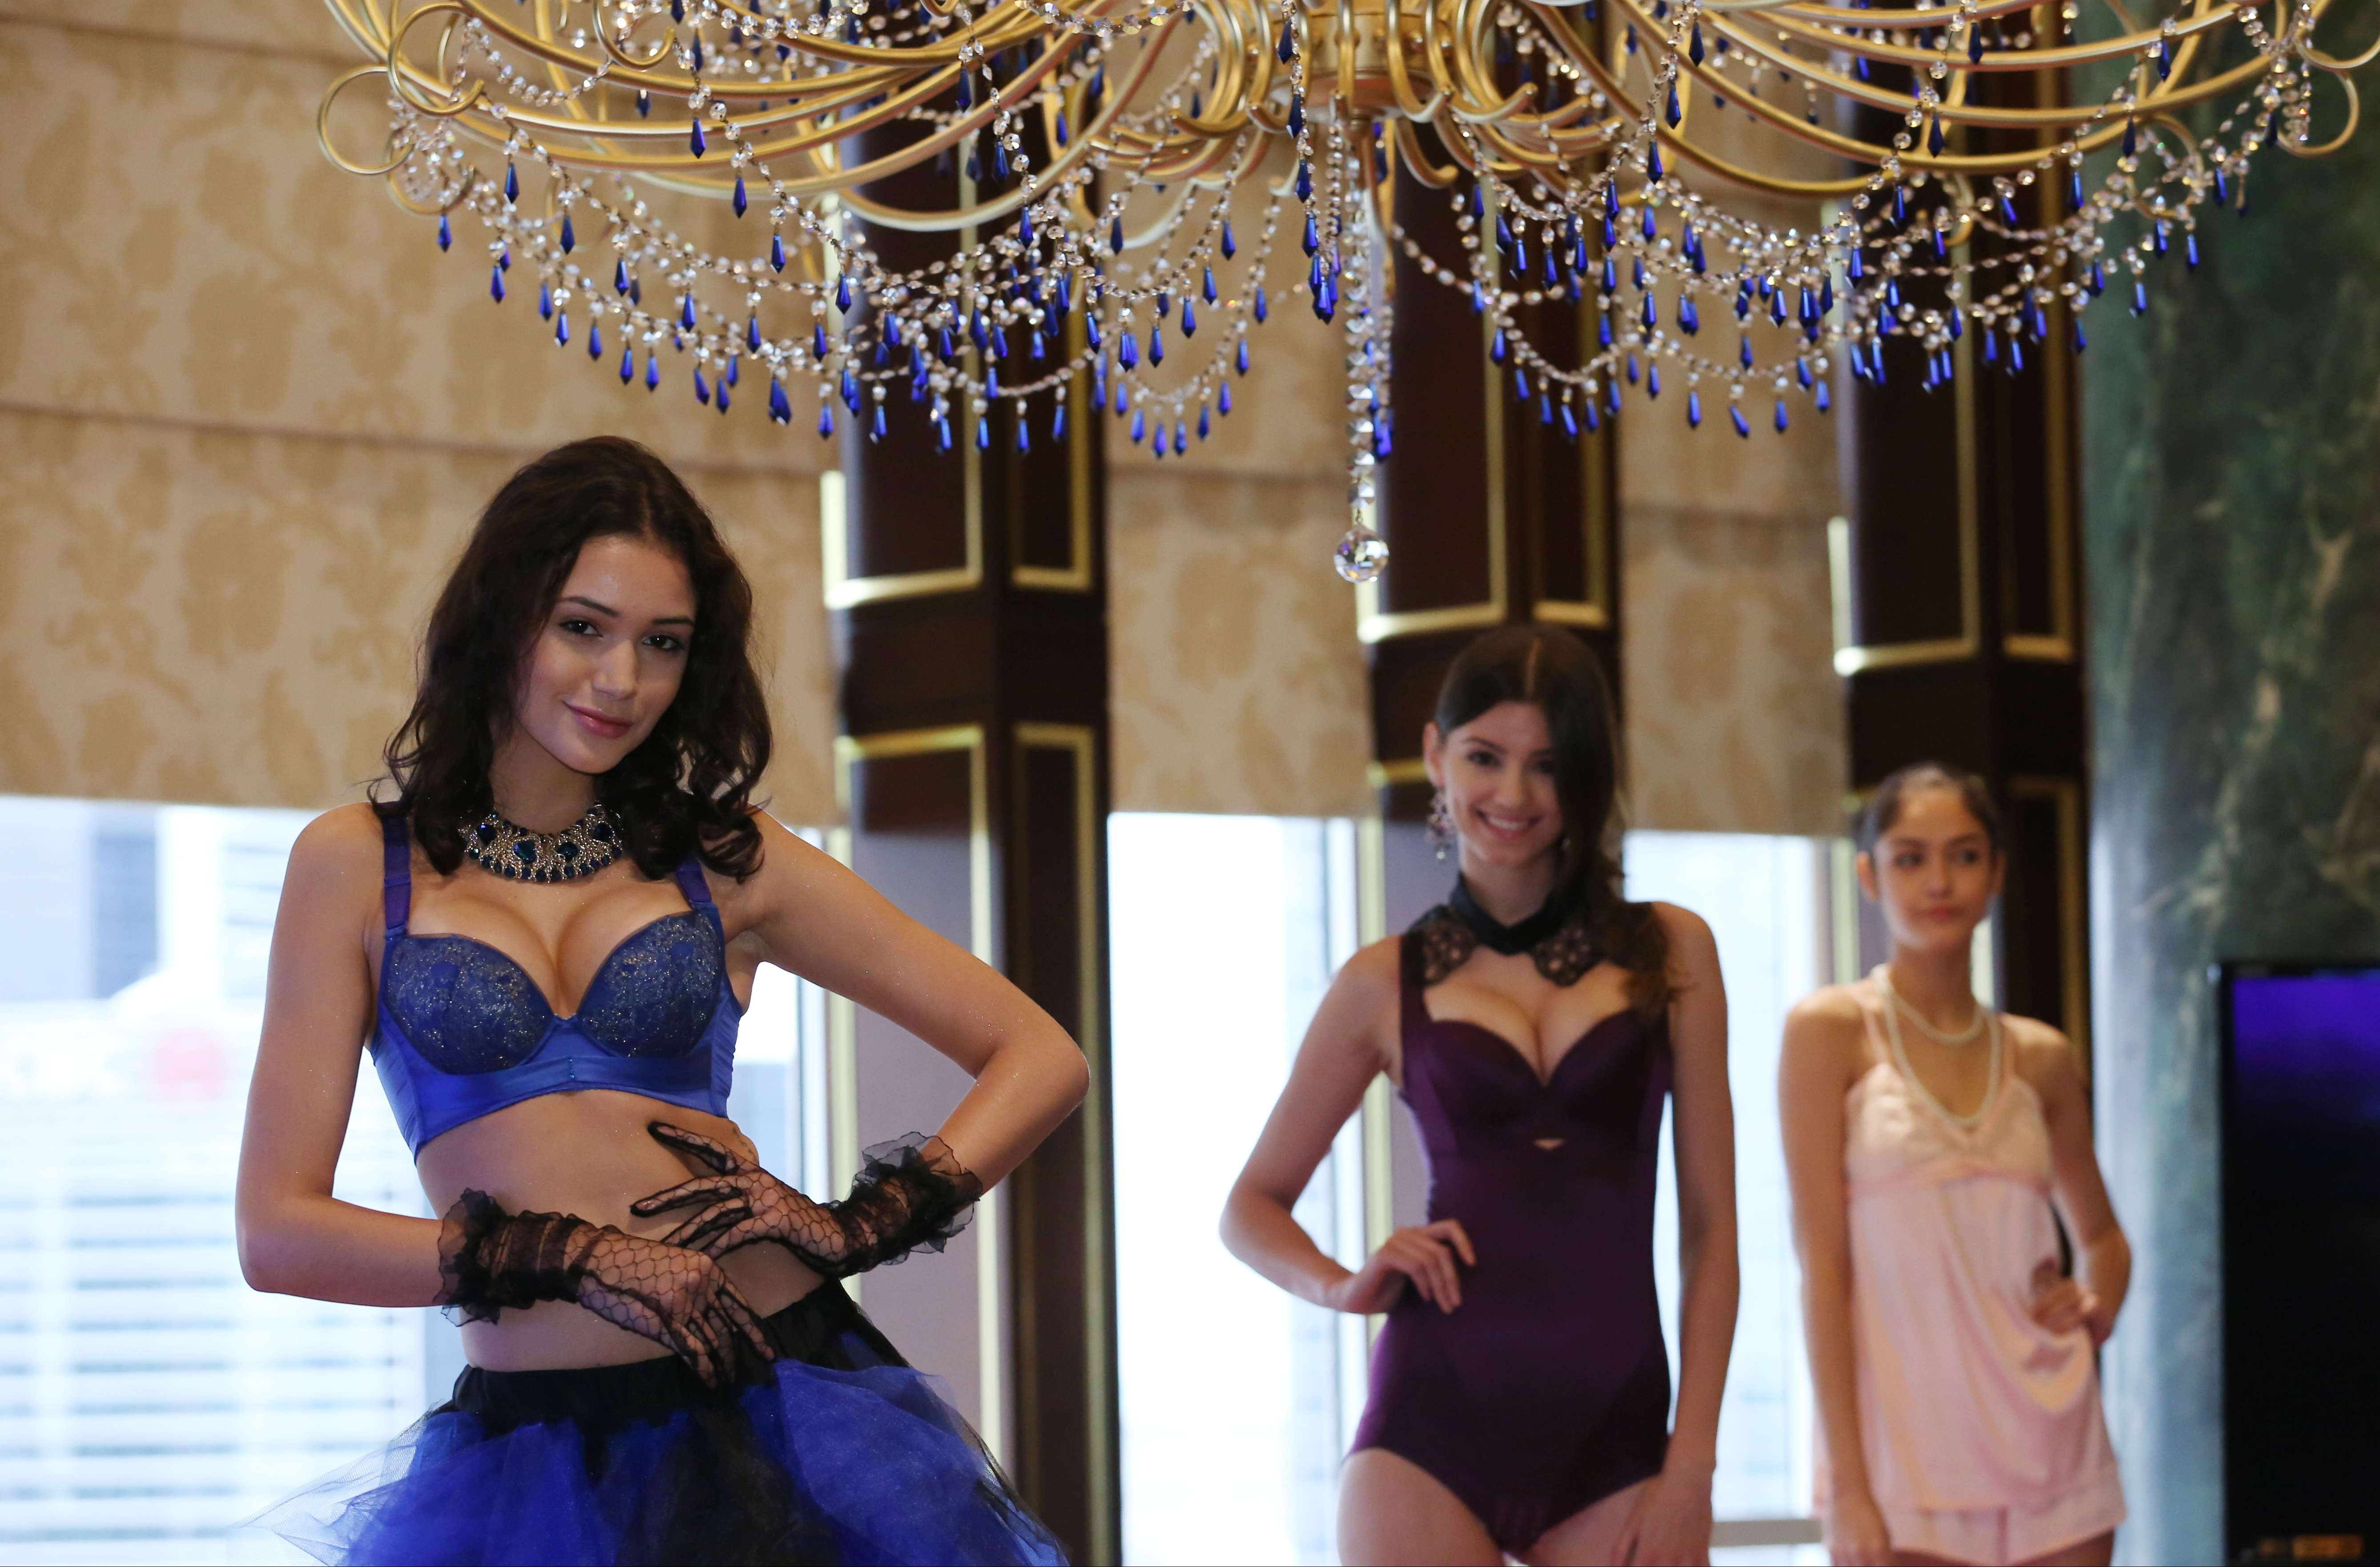 cf6fcf13afb Surge in China's top lingerie maker short-lived even with Victoria's Secret  ex-CEO on board | South China Morning Post